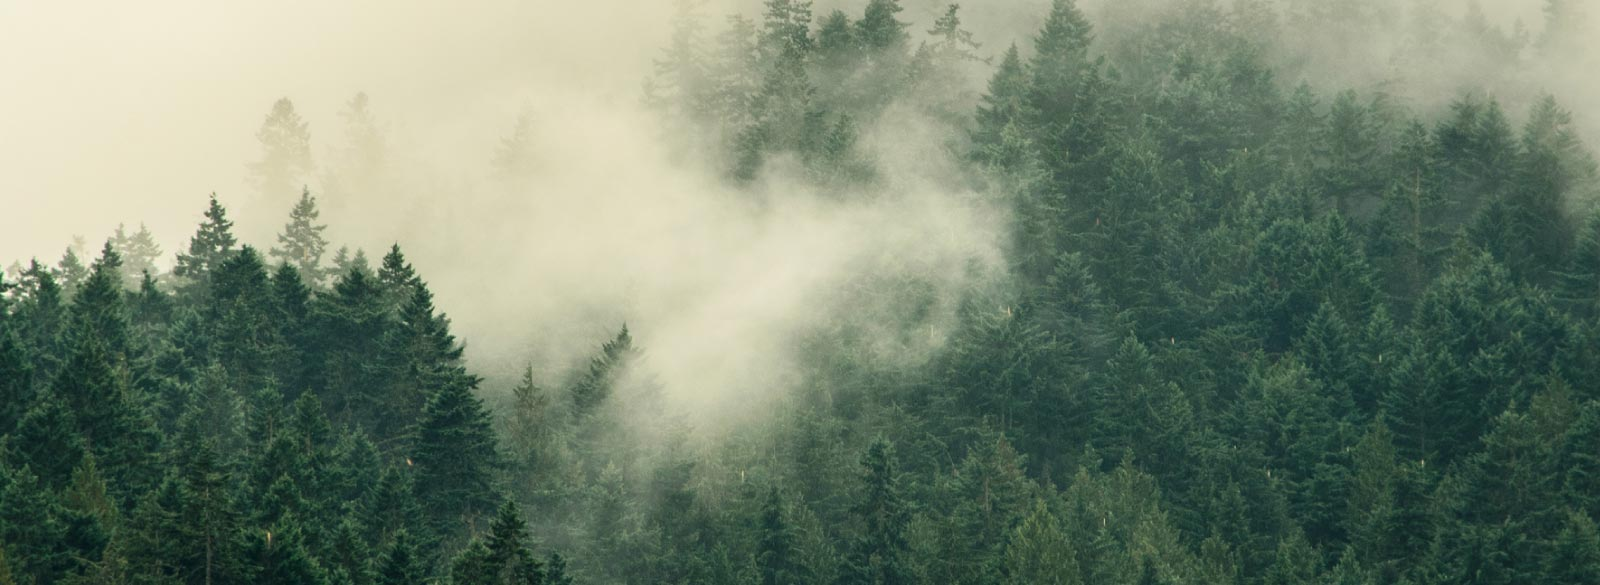 The morning fog lingers across the tree tops.